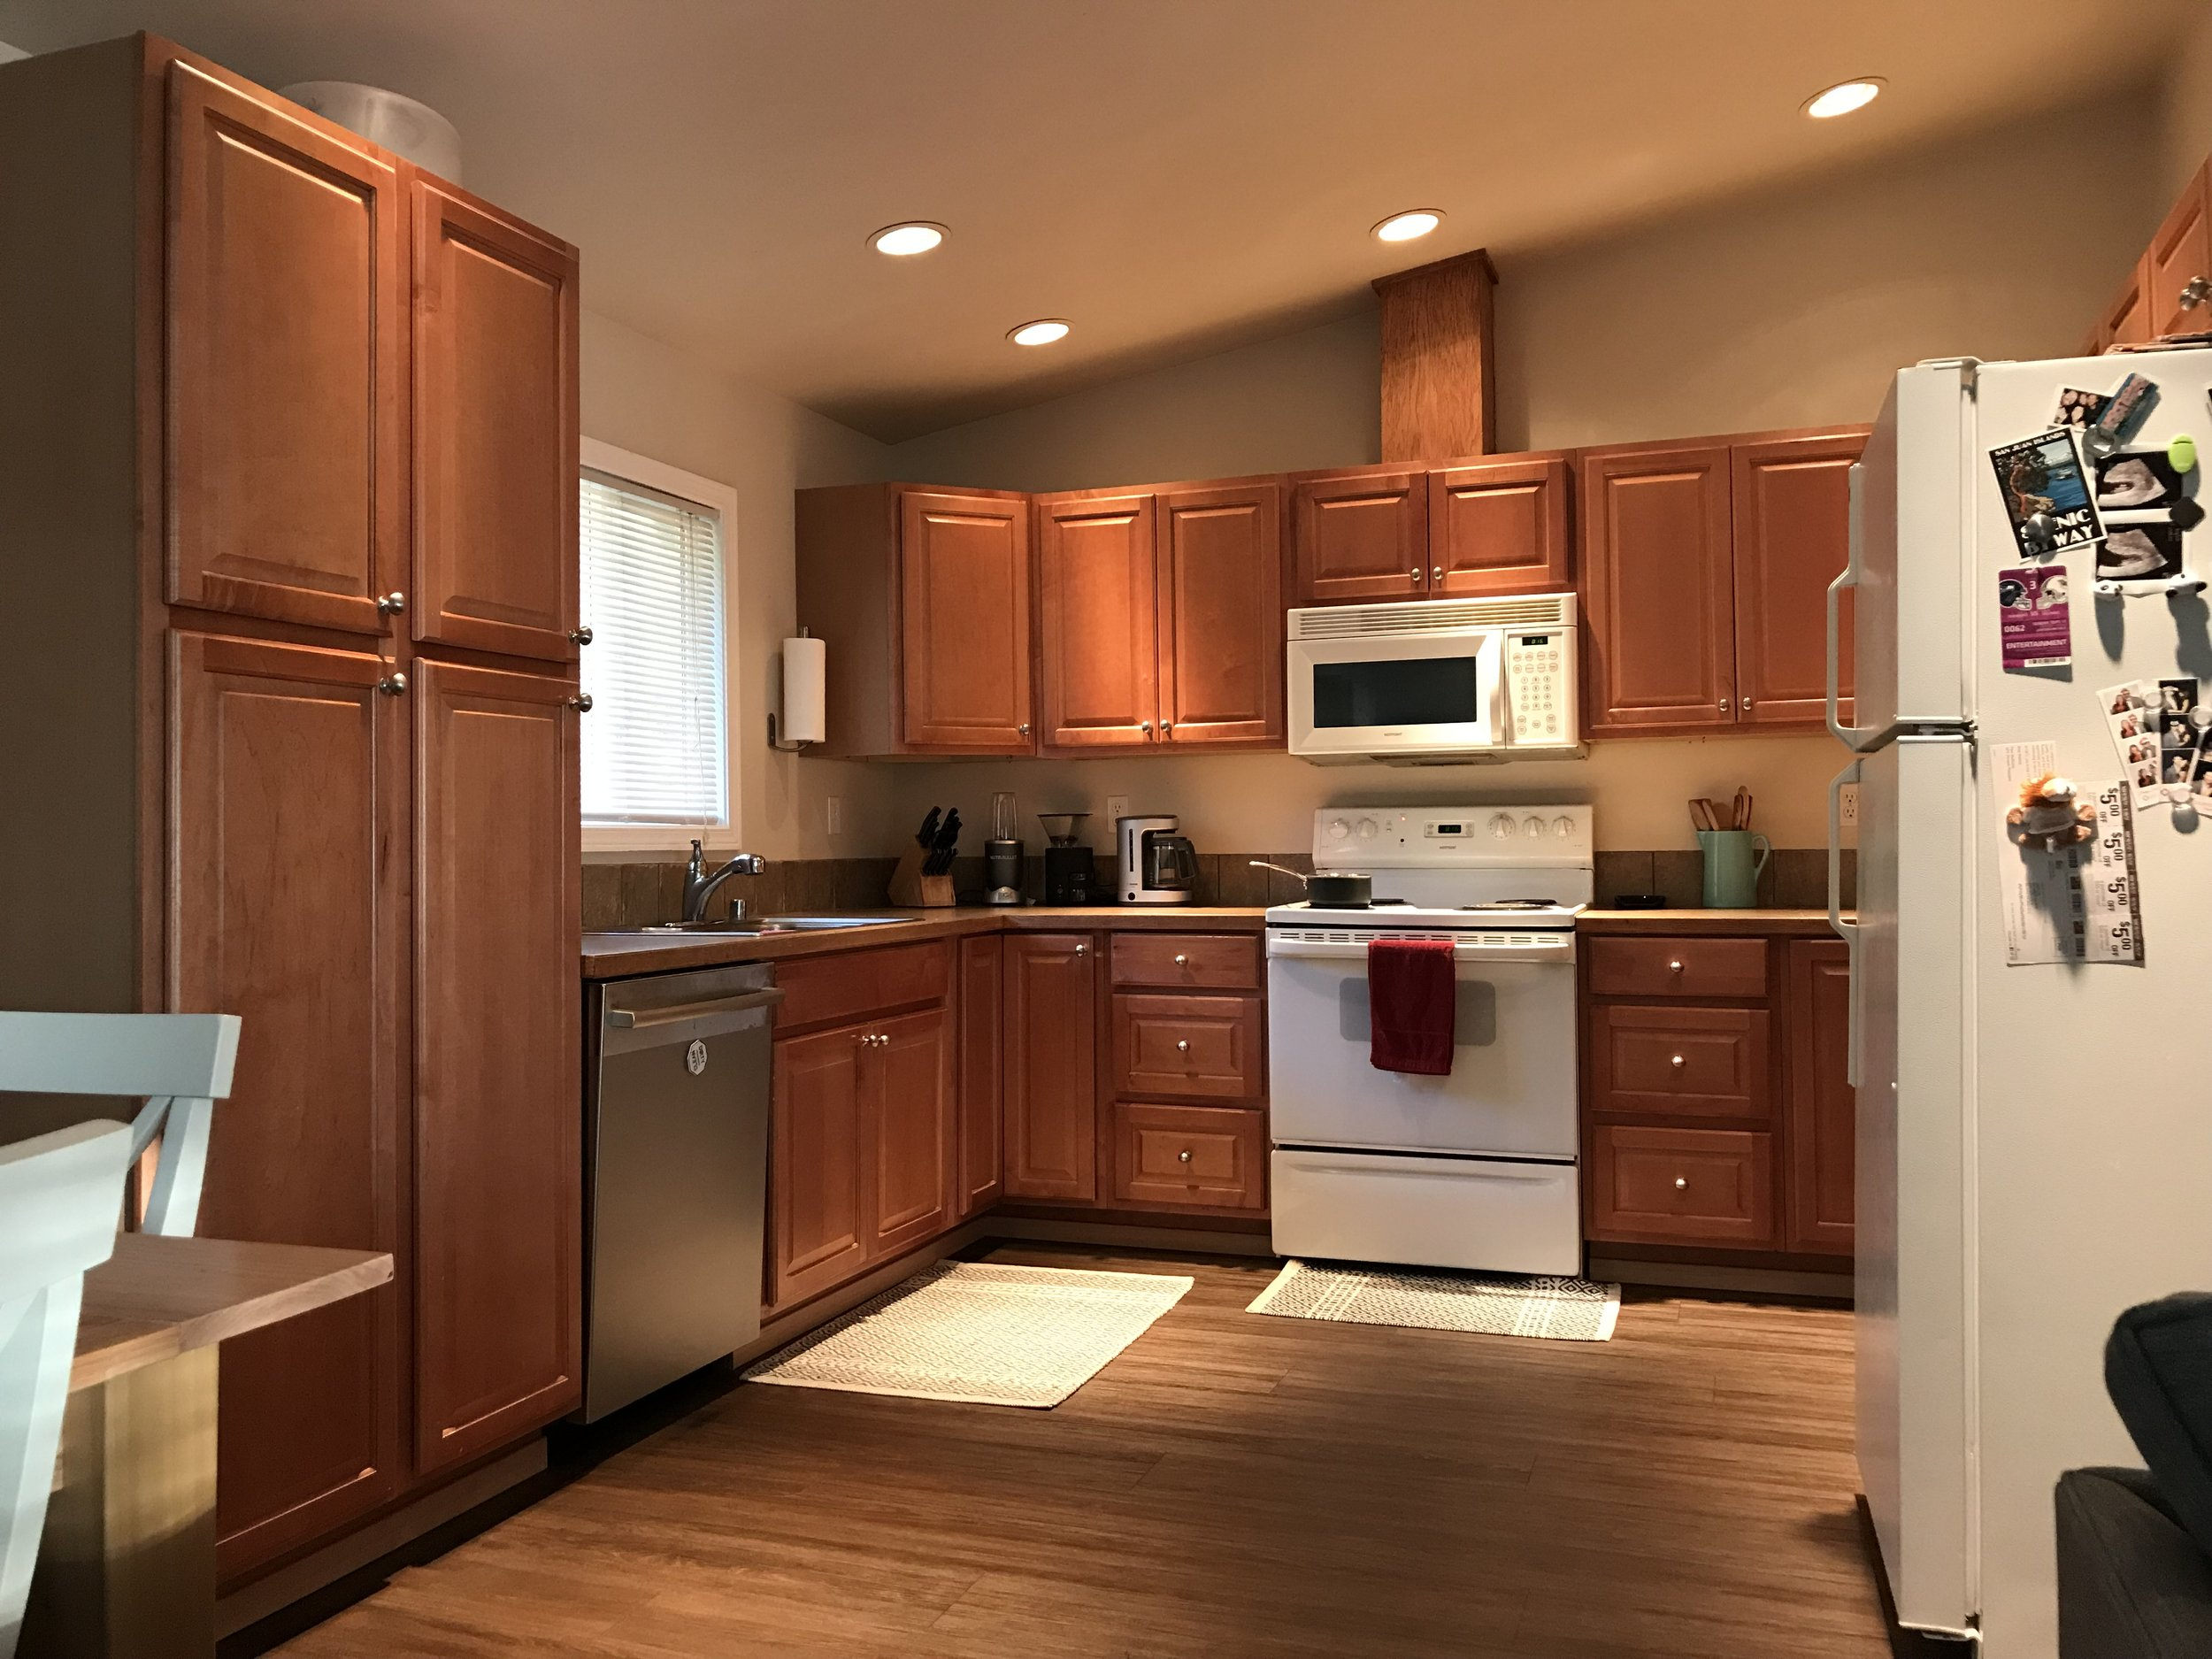 Kitchen Renovation Diy Home Projects